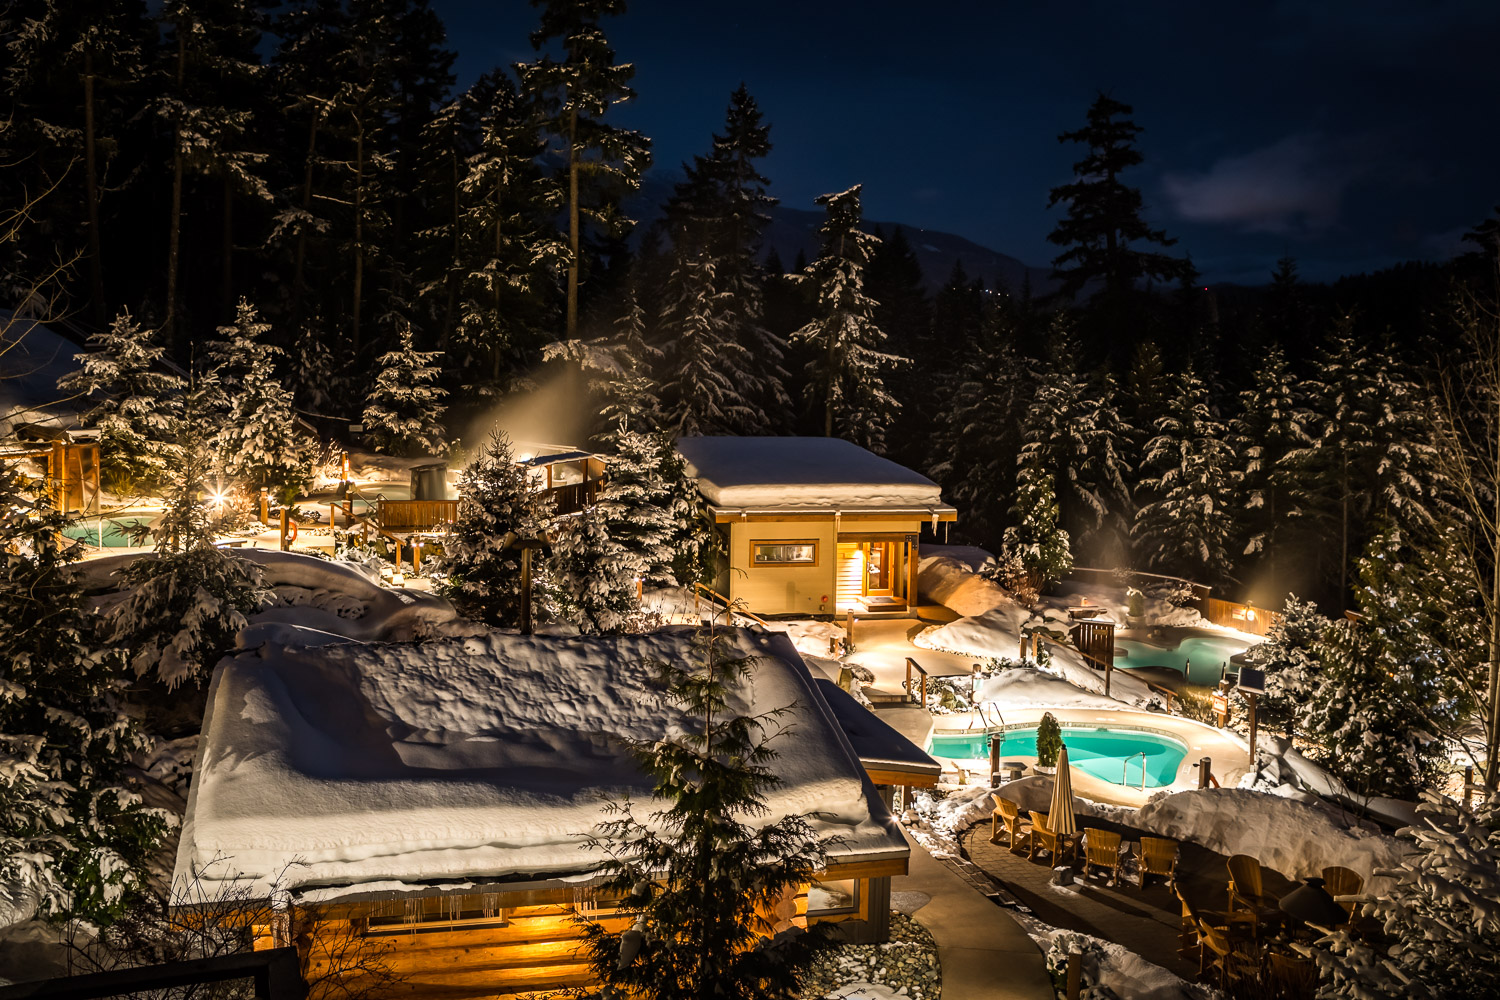 Snowy night image of Spa